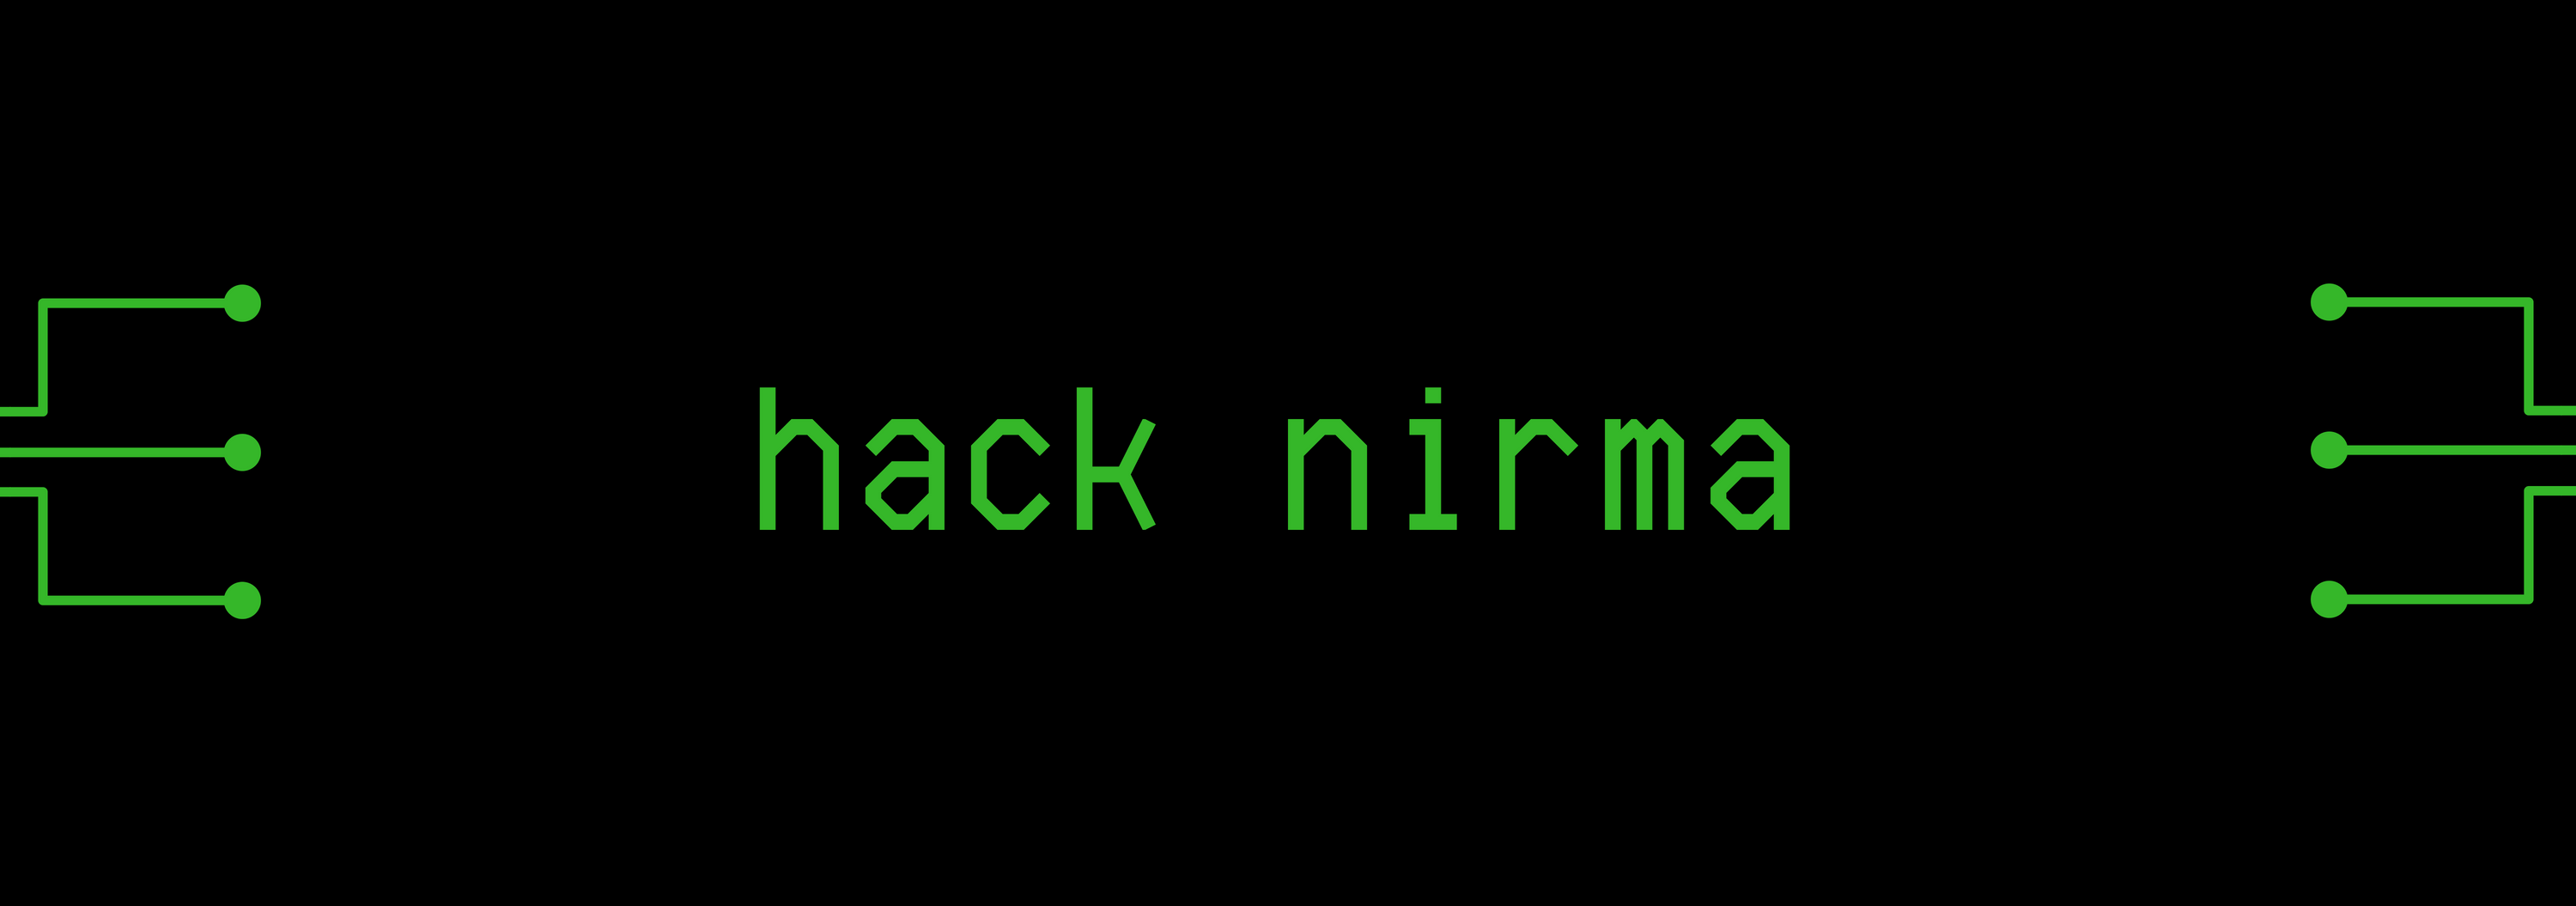 hacknirma | 🎓 Path to hack Computer Science (BTech) at @nirmauni